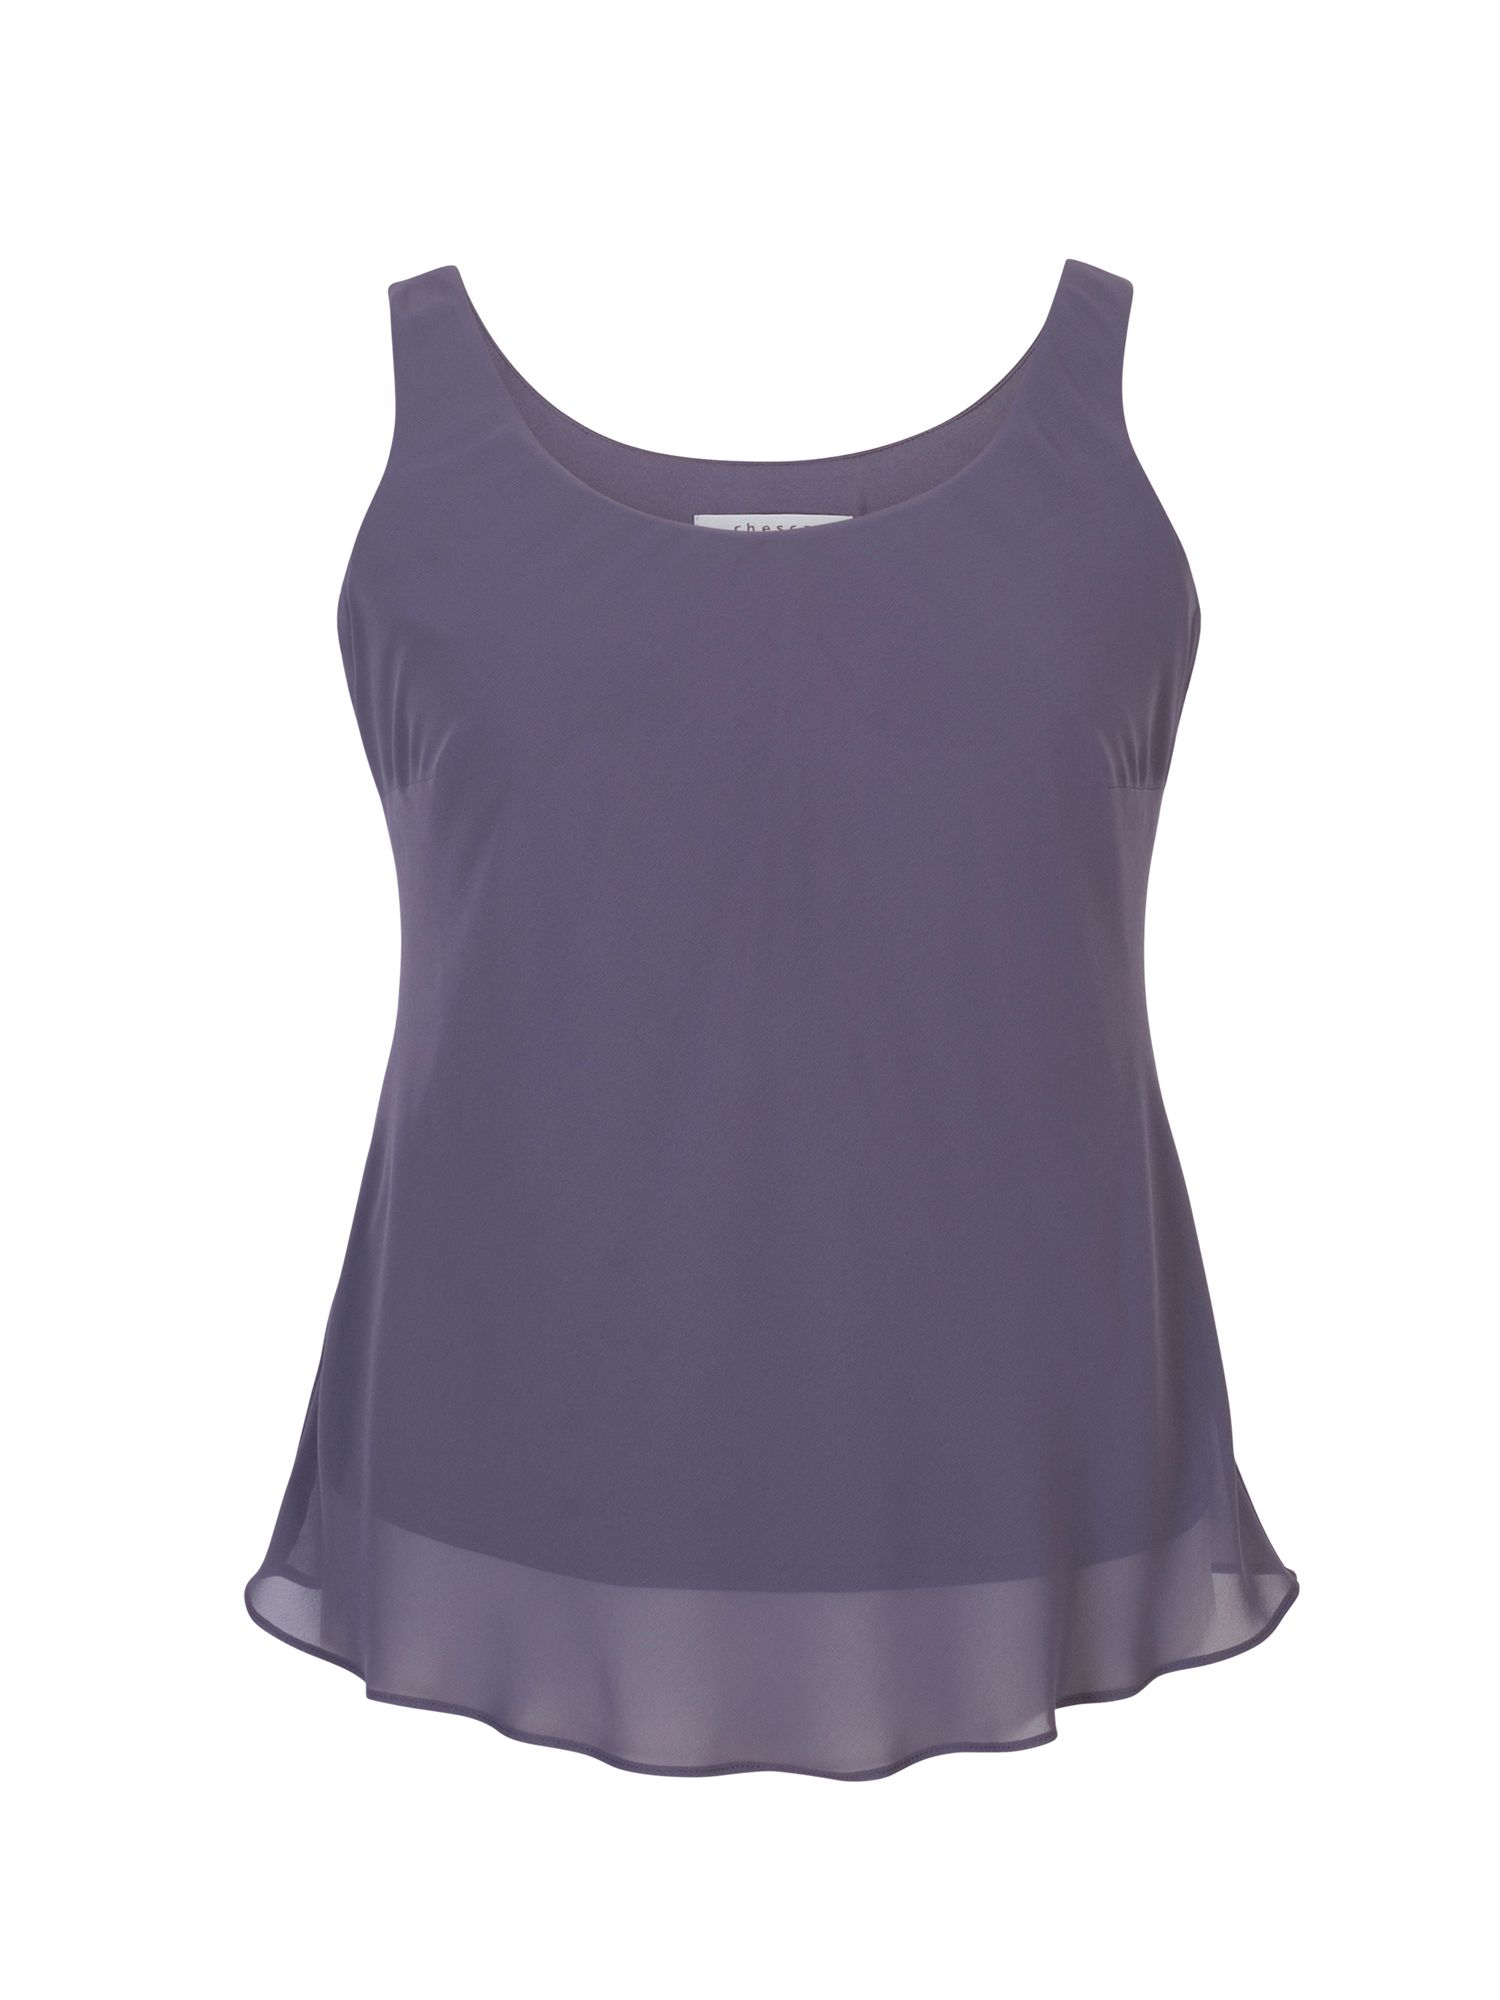 Chesca Chiffon Camisole, Purple